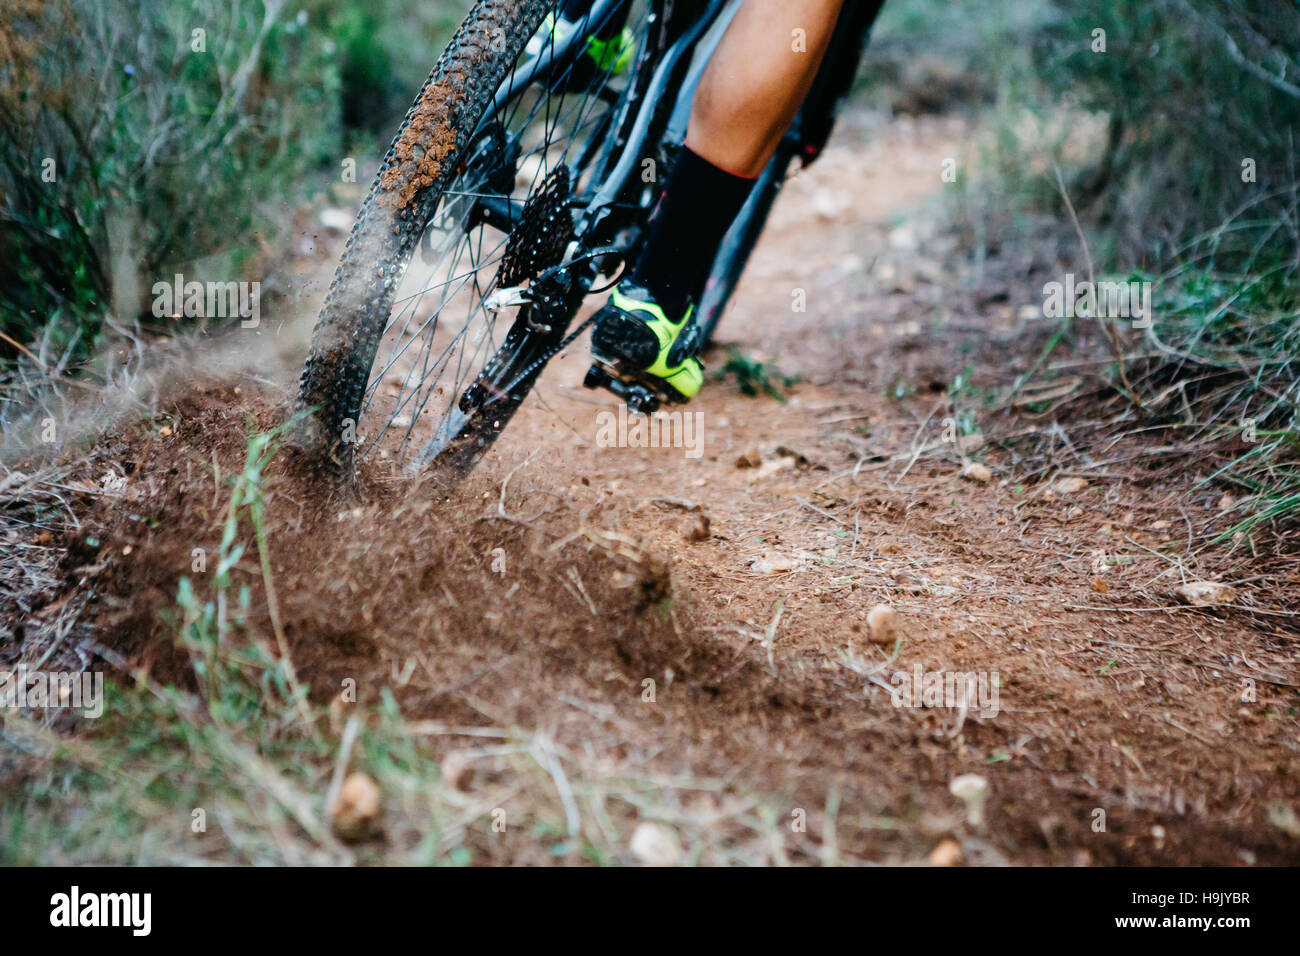 Close-up of mountainbiker skidding in a curve - Stock Image